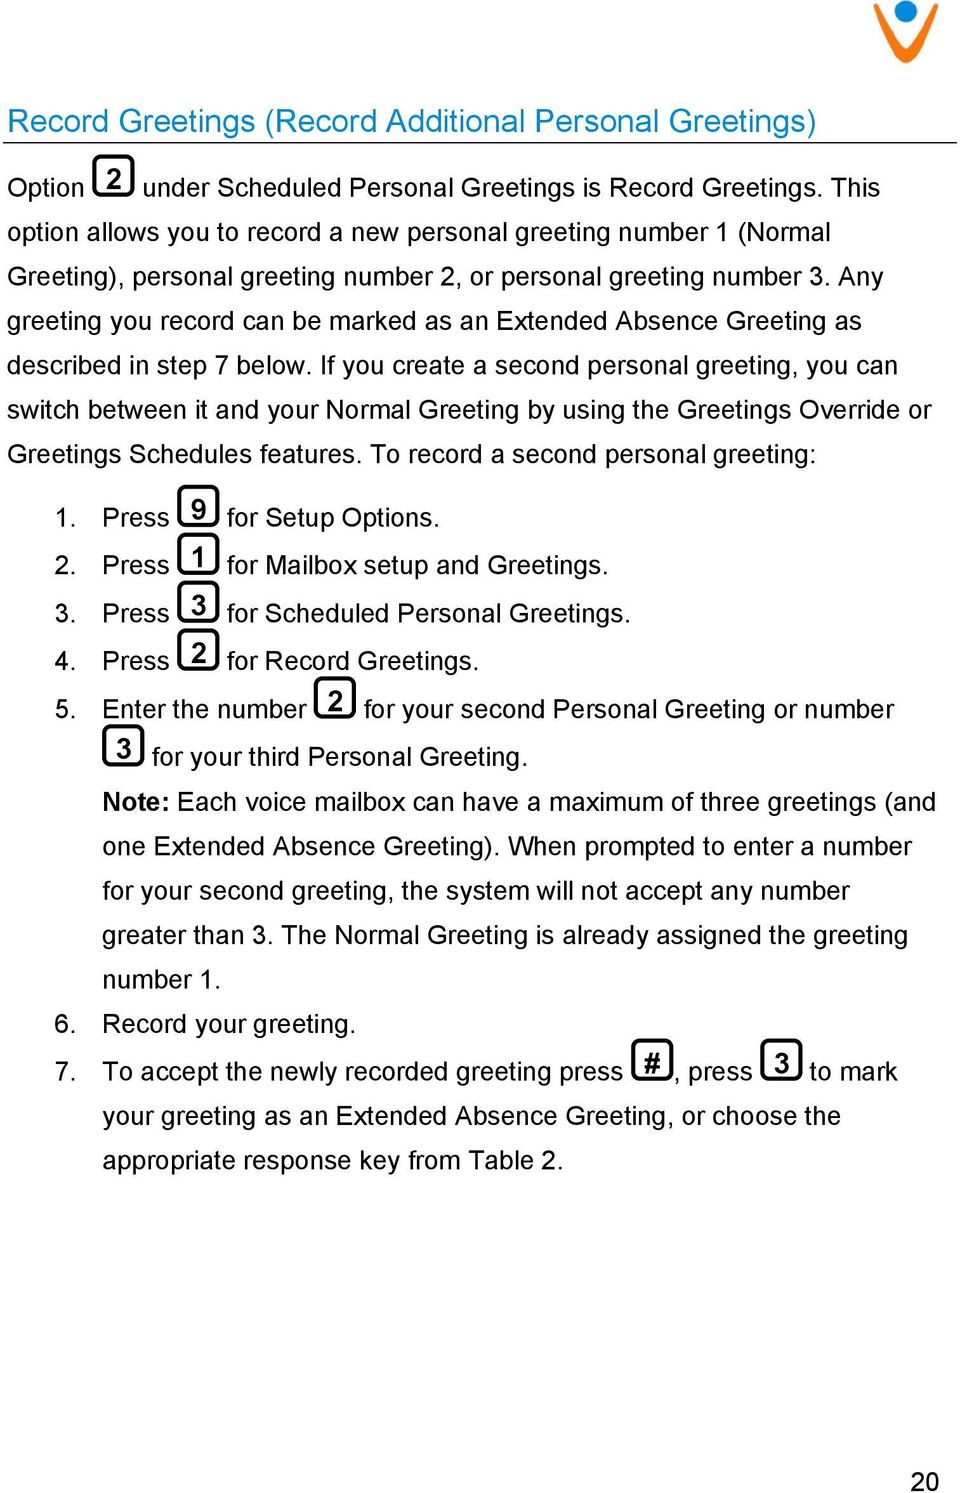 Any greeting you record can be marked as an Extended Absence Greeting as described in step 7 below.